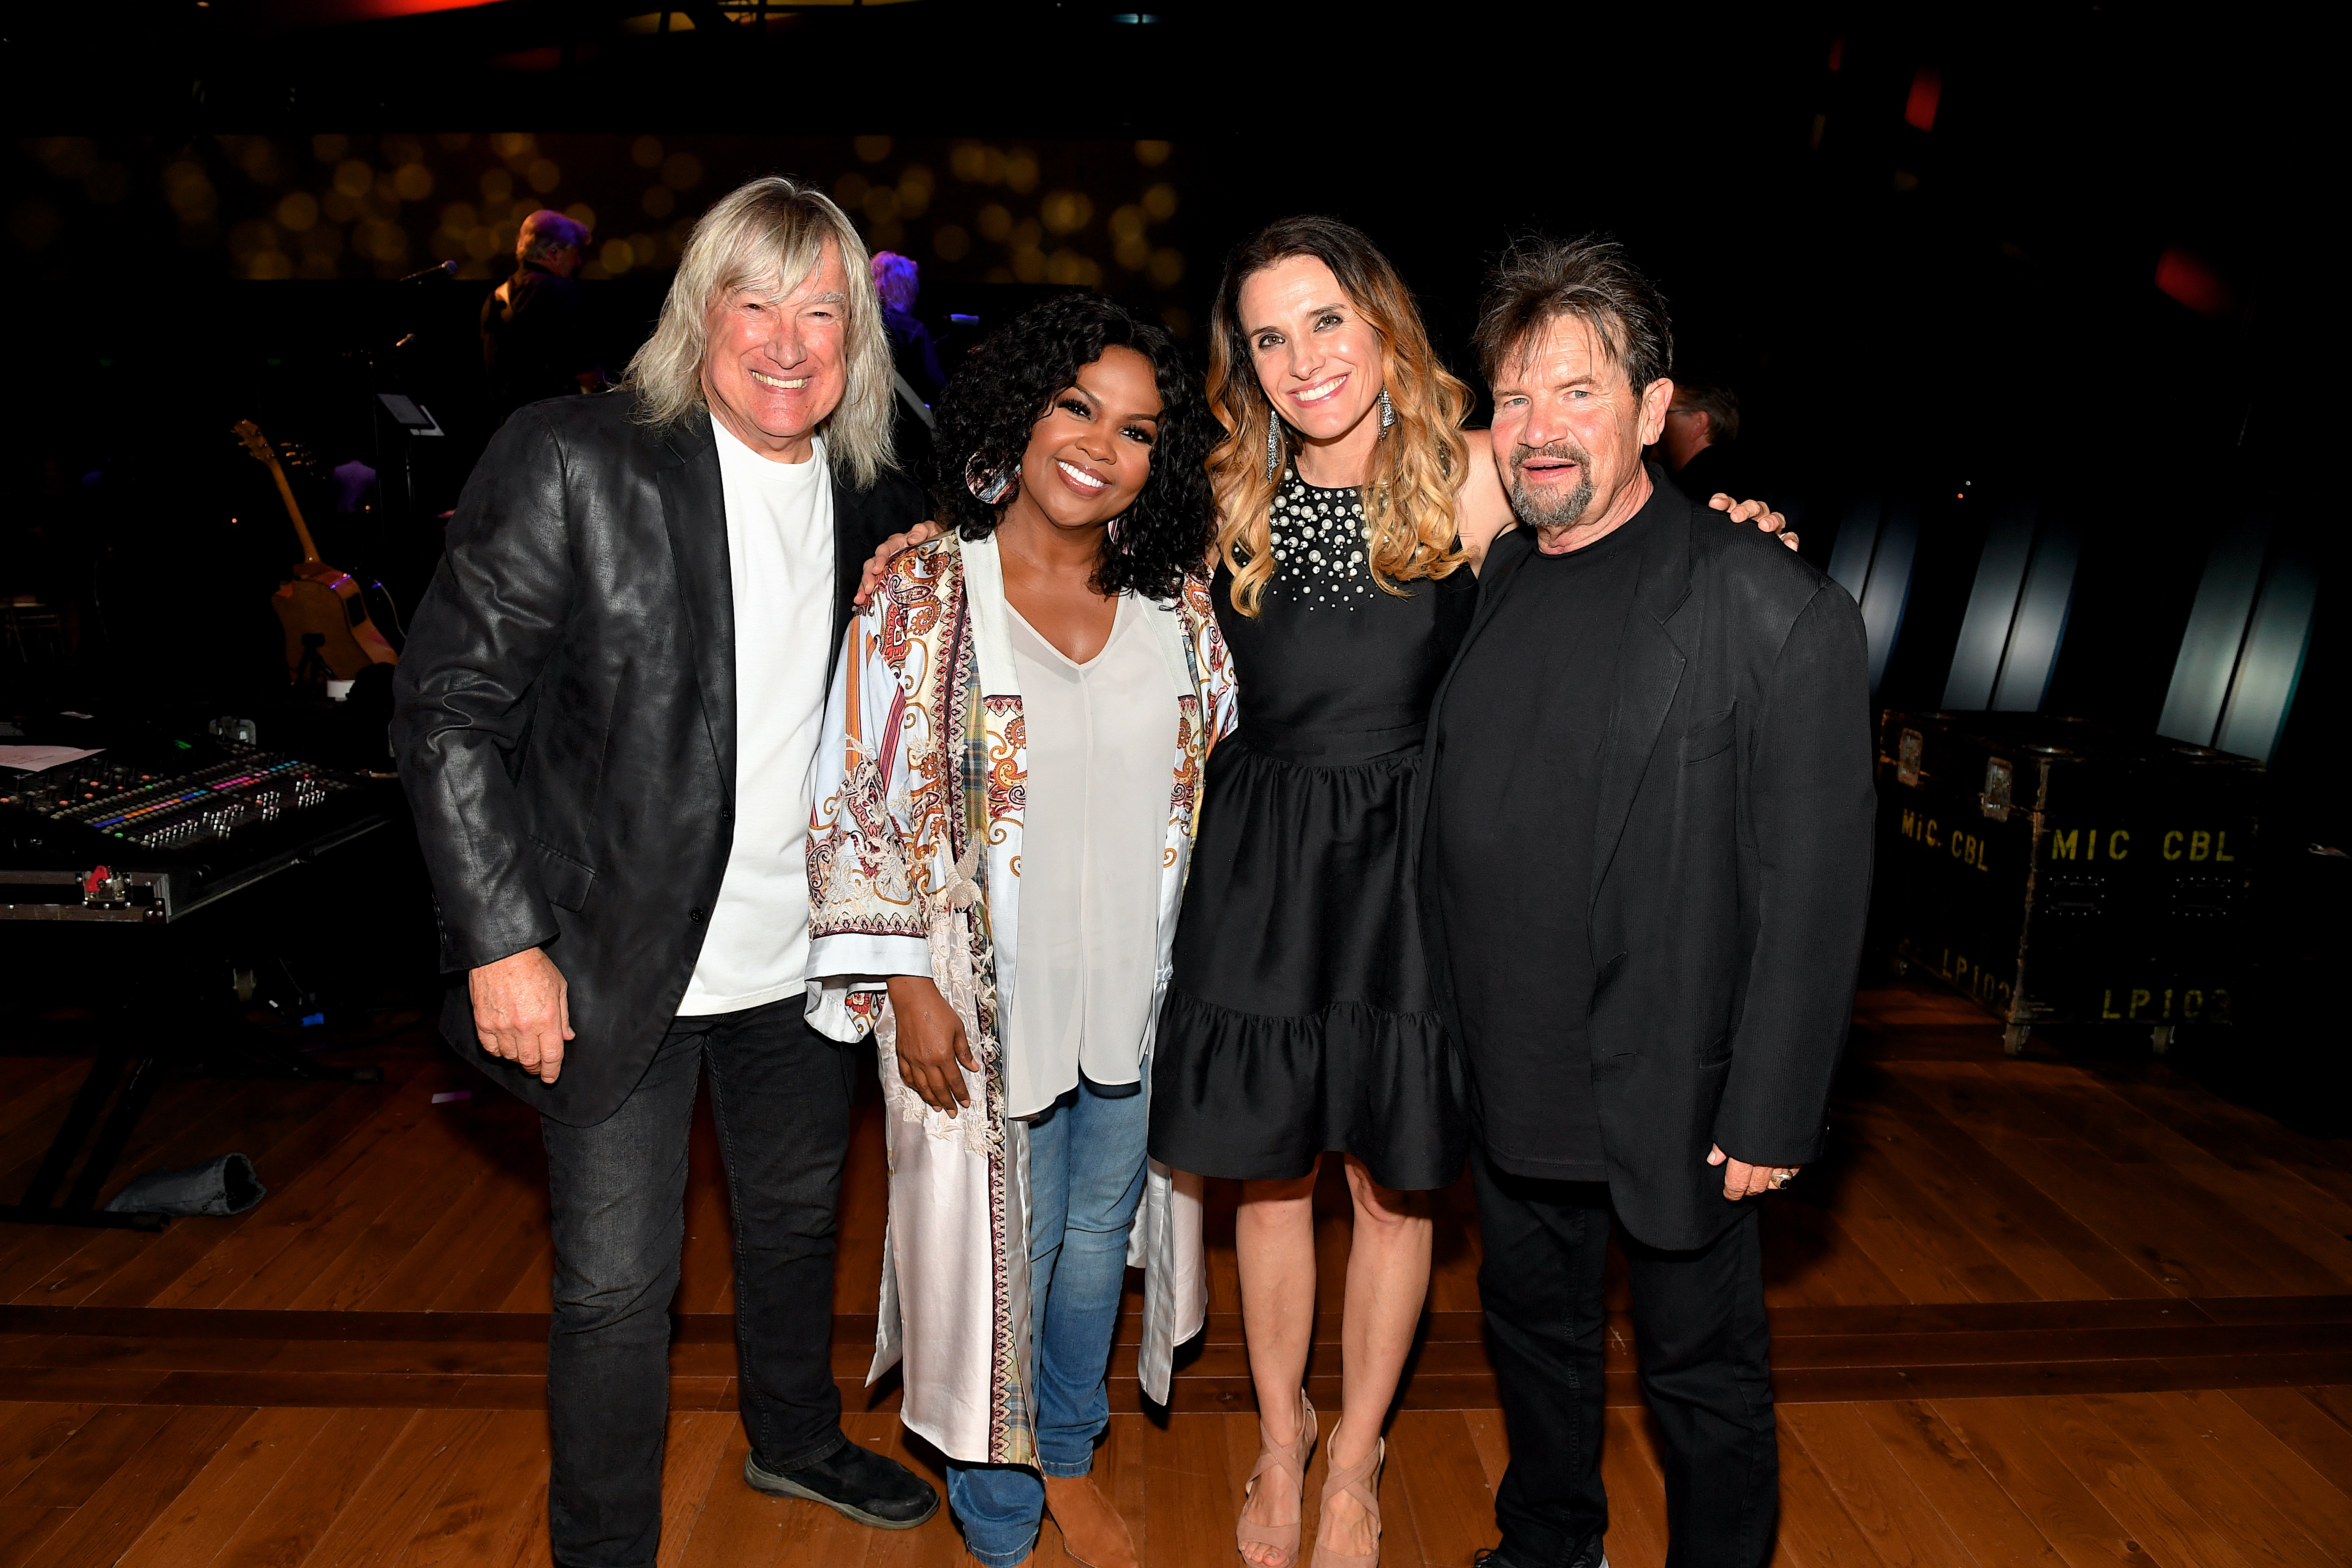 (L-R) John Schlitt, CeCe Winans, Rebecca St. James and Russ Taff arrive at the afterparty for the premiere of Lionsgate